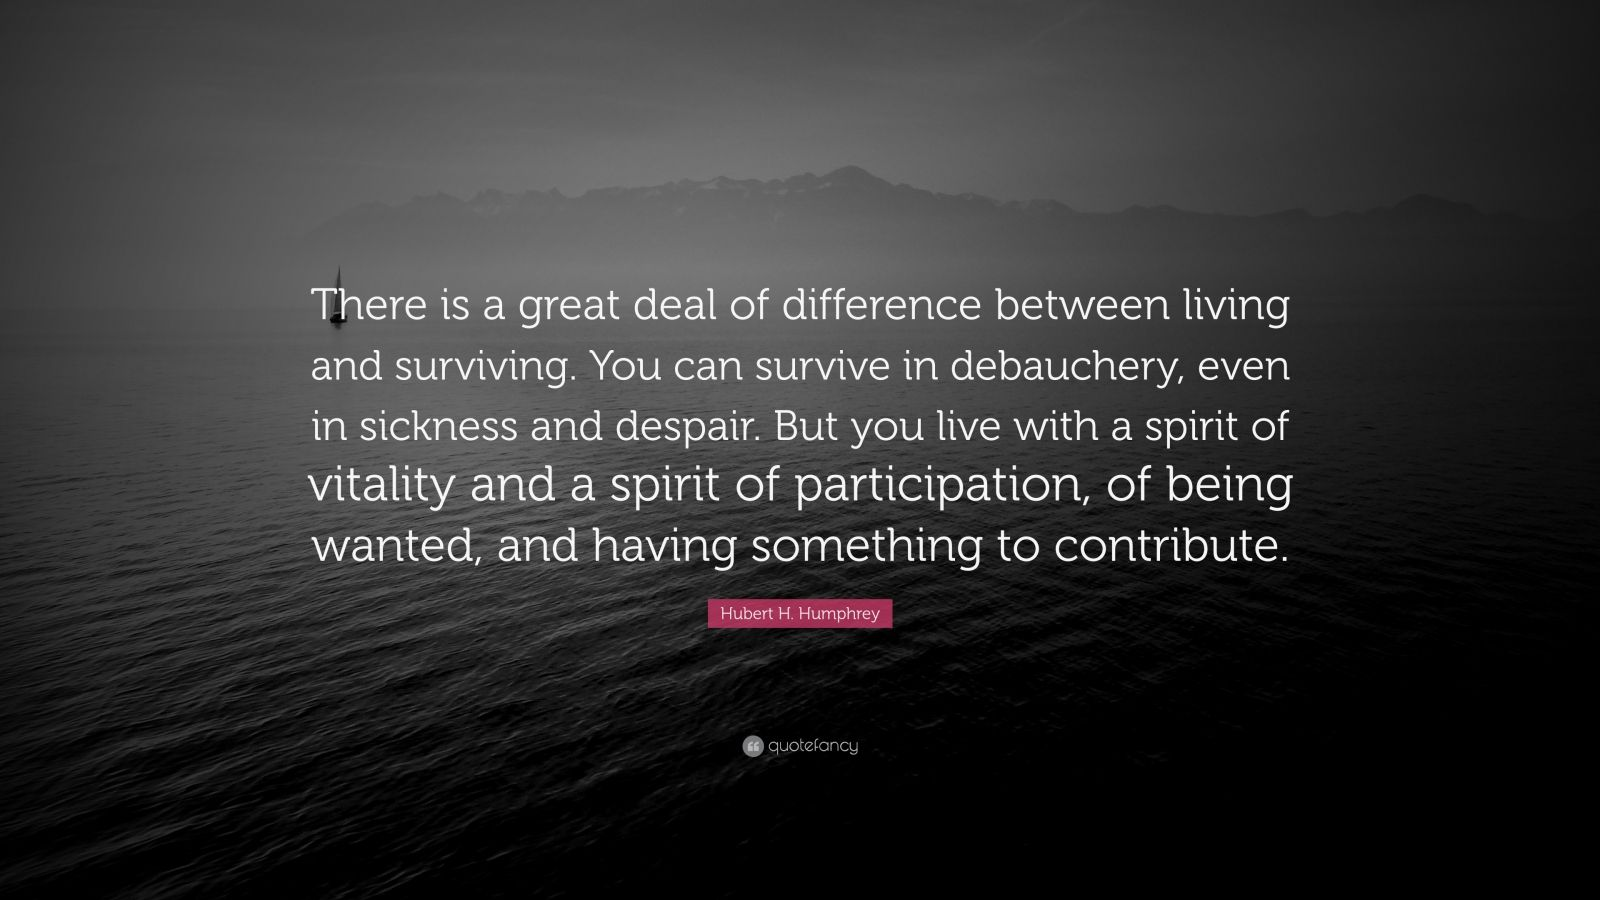 """Hubert H. Humphrey Quote: """"There is a great deal of difference between living and surviving. You can survive in debauchery, even in sickness and despair. But you live with a spirit of vitality and a spirit of participation, of being wanted, and having something to contribute."""""""